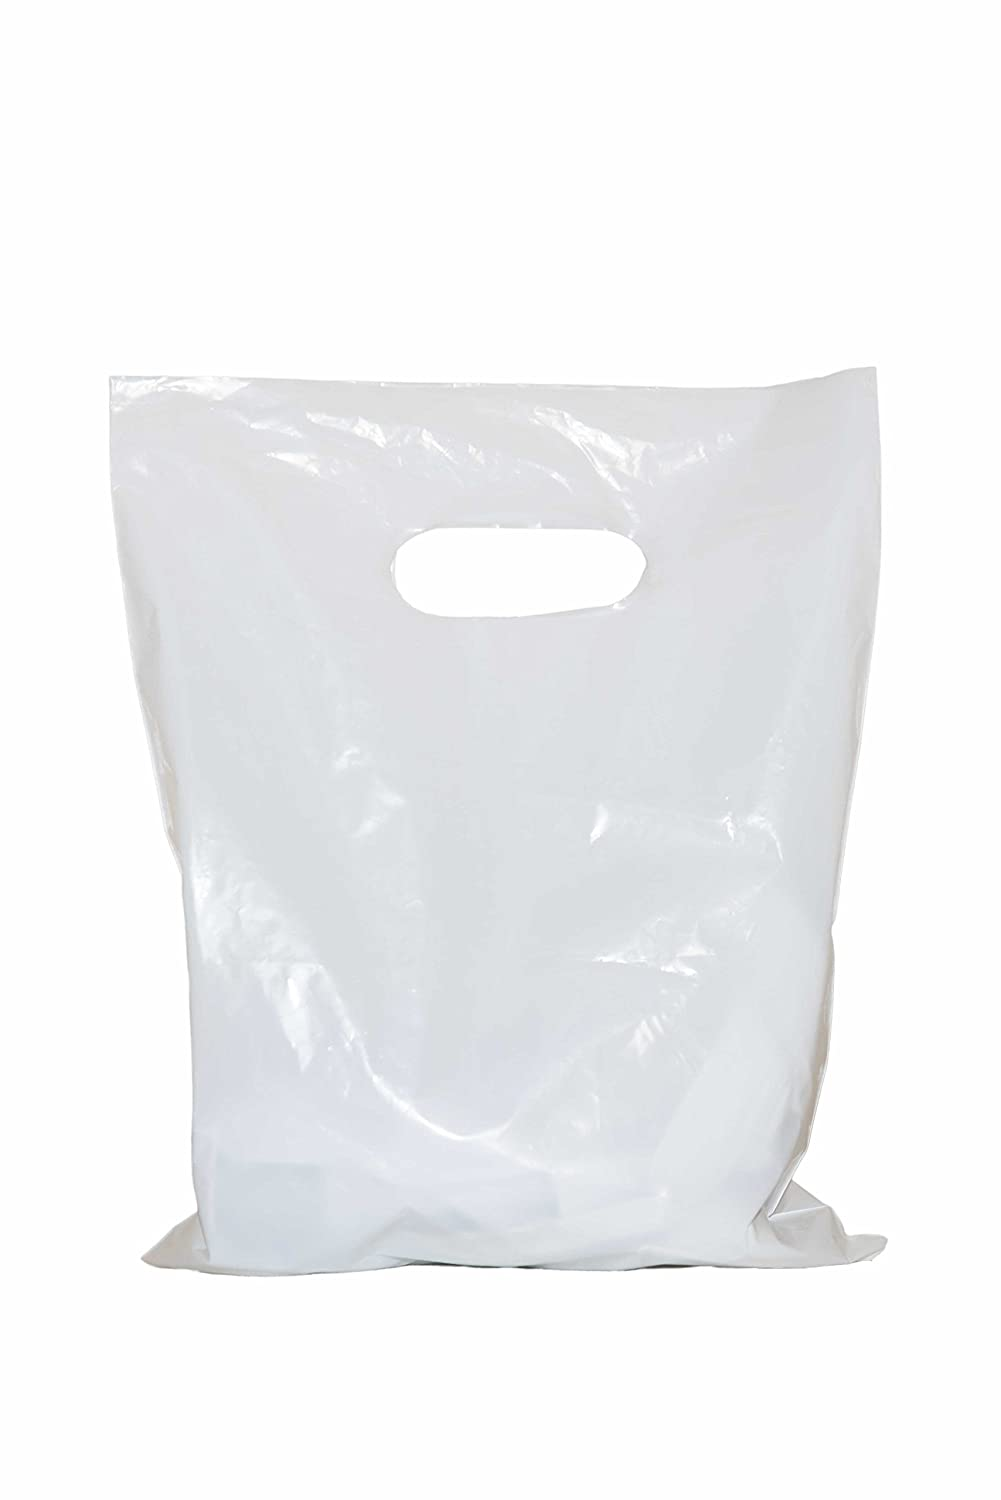 Merchandise bags 12x15 with handles: ACME Bag Bros 100 large glossy white merchandise bags, retail shopping bags with handles (die-cut), 12' x 15'